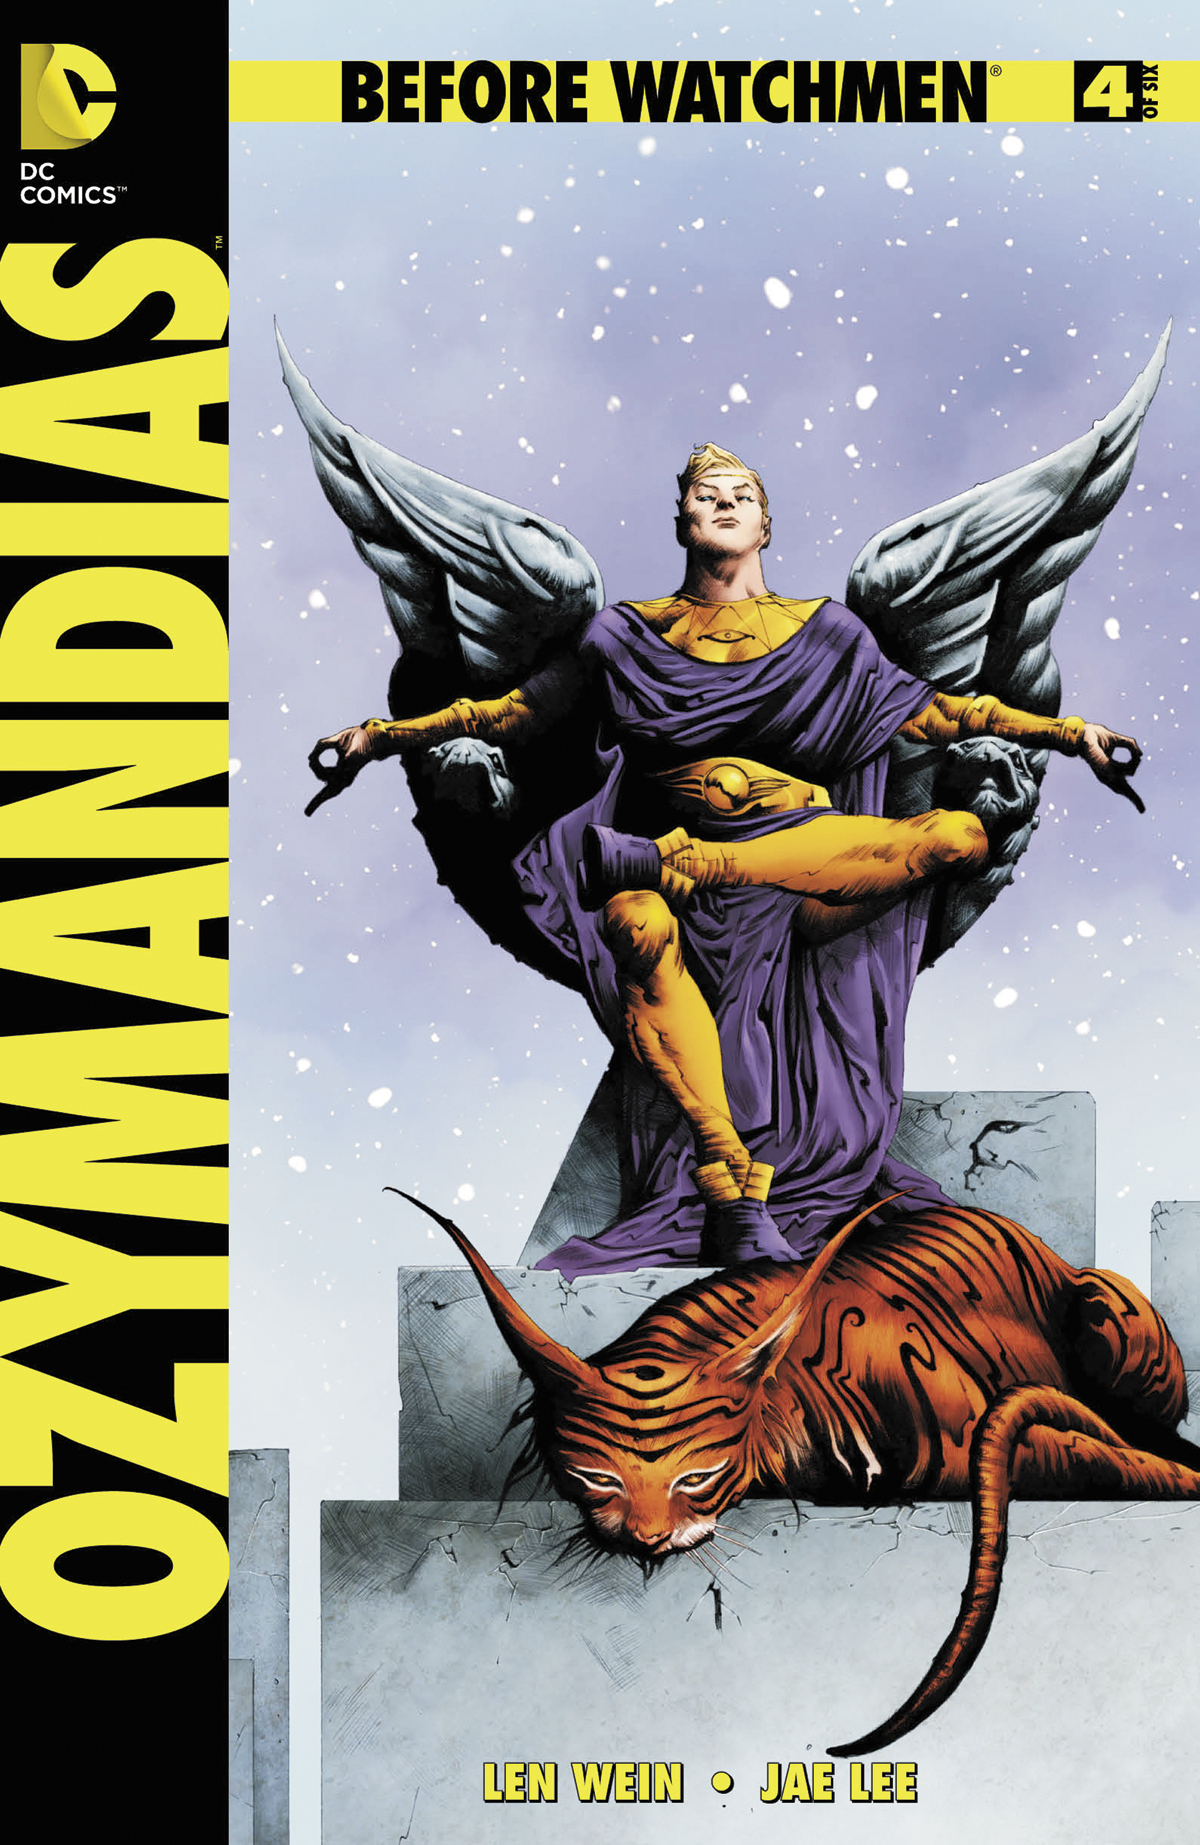 BEFORE WATCHMEN OZYMANDIAS #4 (OF 6) COMBO PACK (MR)